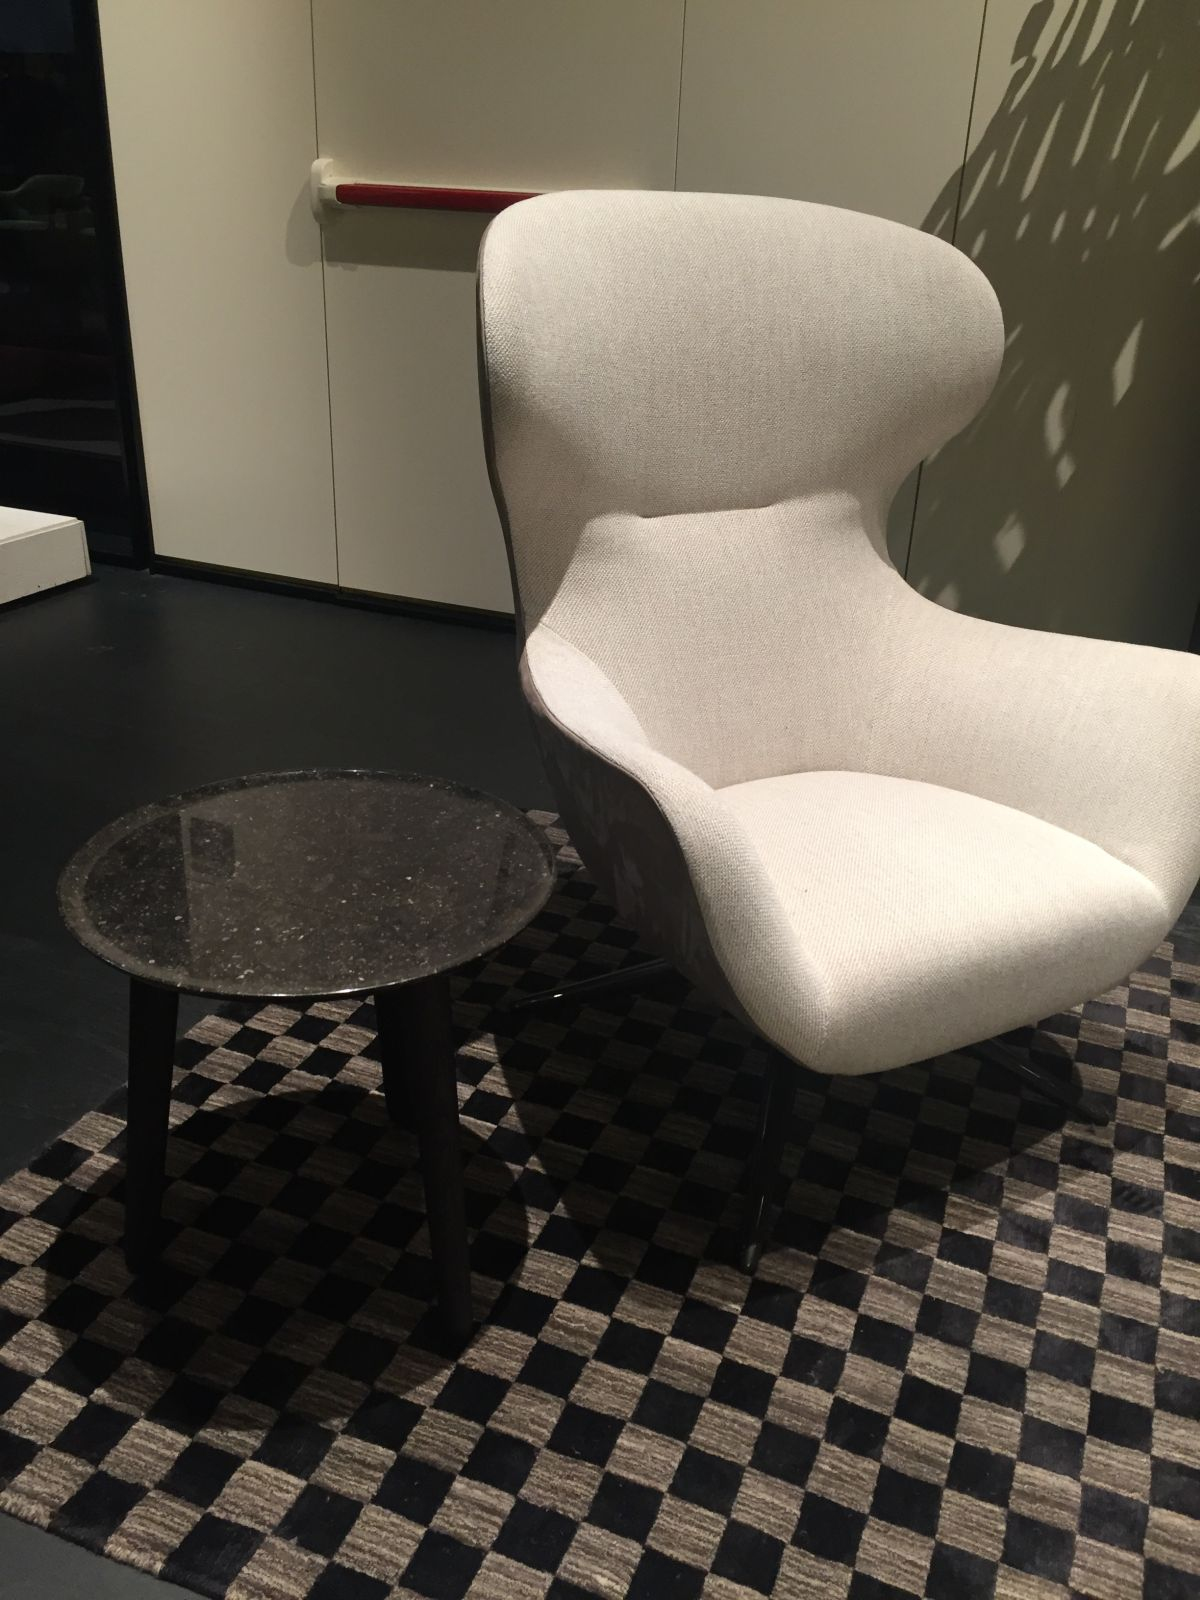 reading nook chair dining chairs ikea simple design ideas for cozy nooks